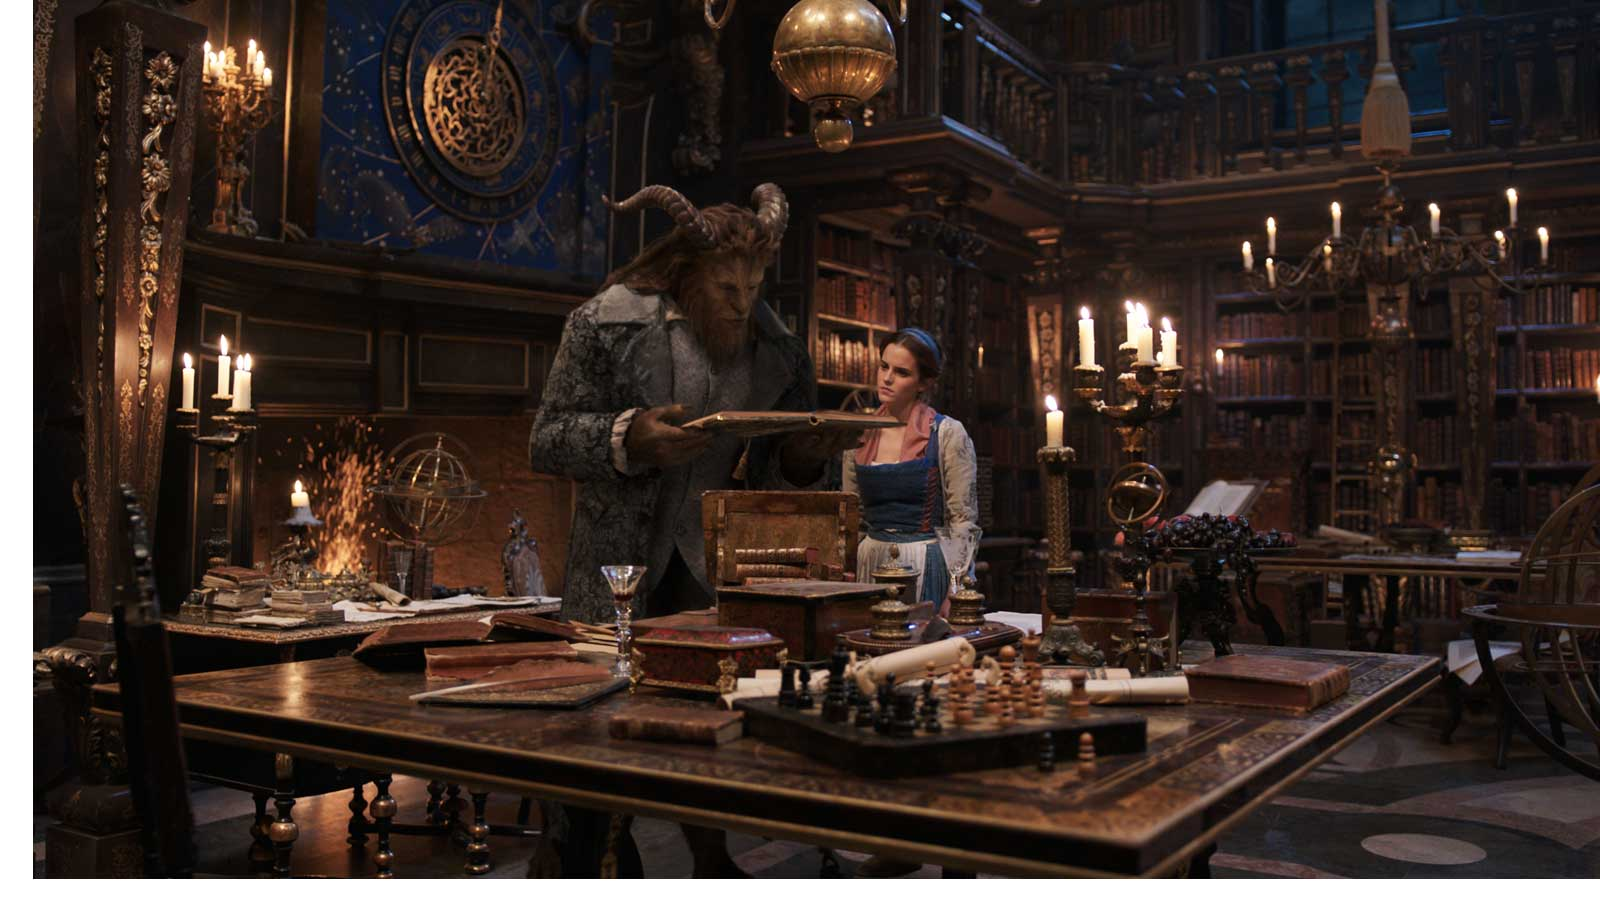 """Disney Releases Several """"Beauty and the Beast"""" Images – The"""